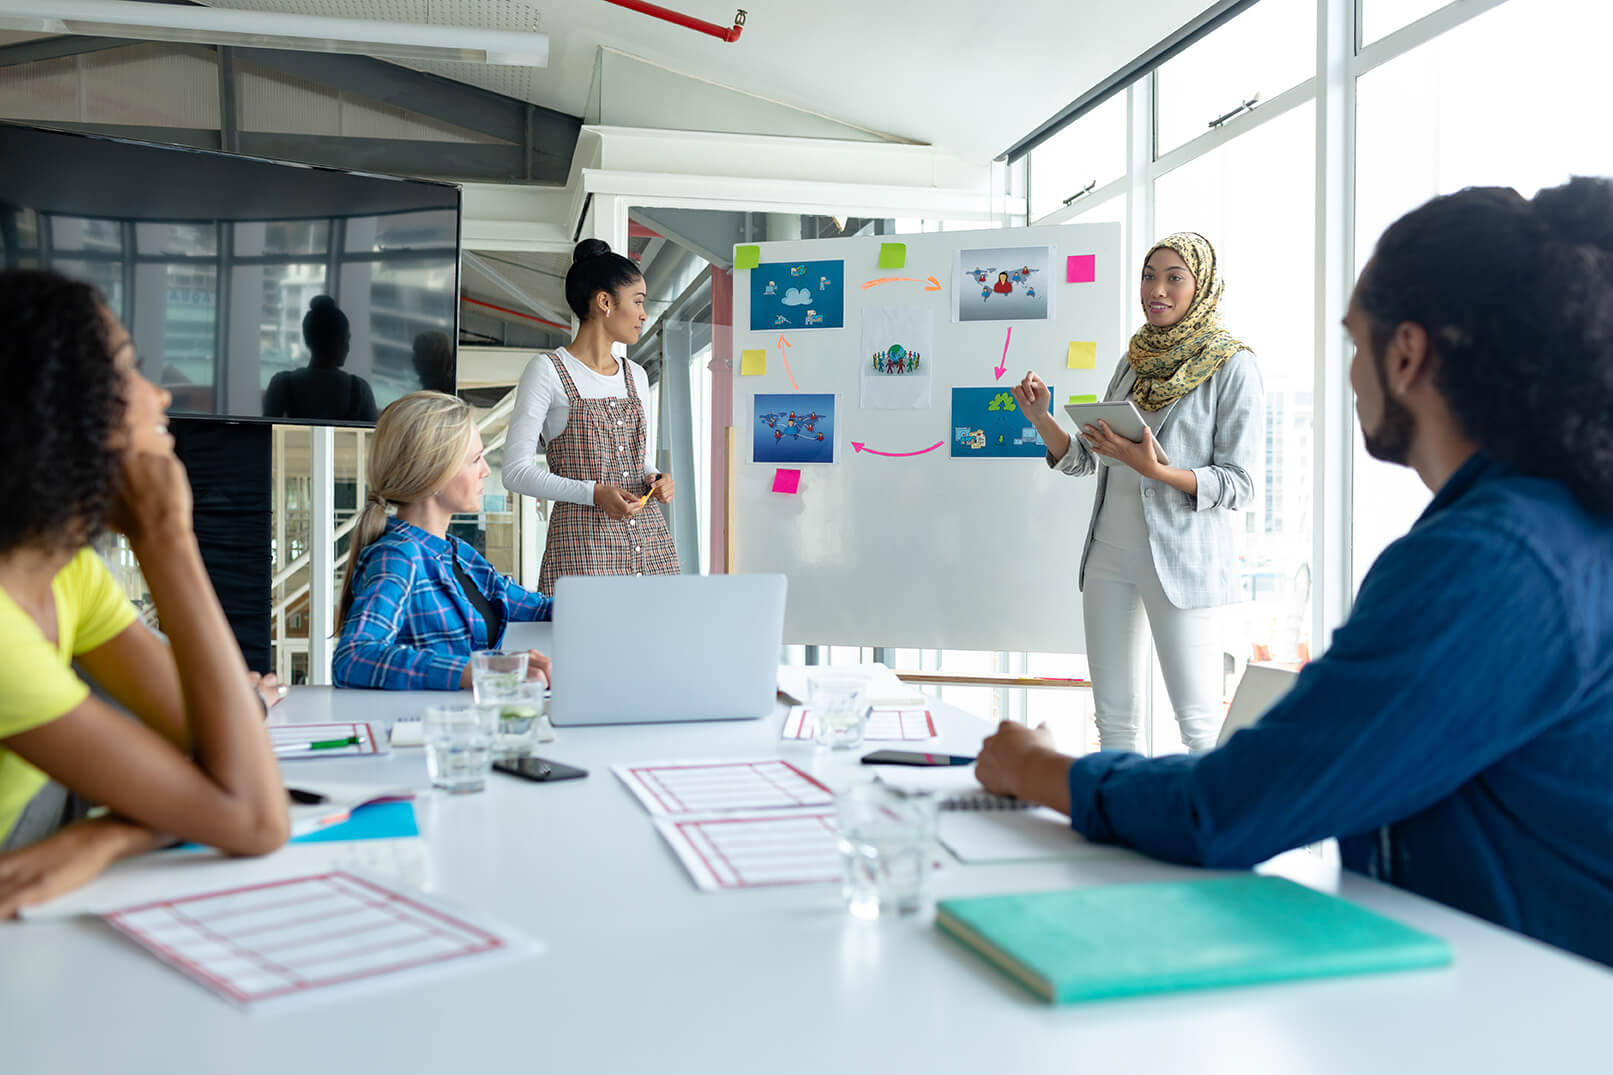 Front view of Mixed-race businesswoman in hijab giving presentation on flip chart during meeting in a modern office